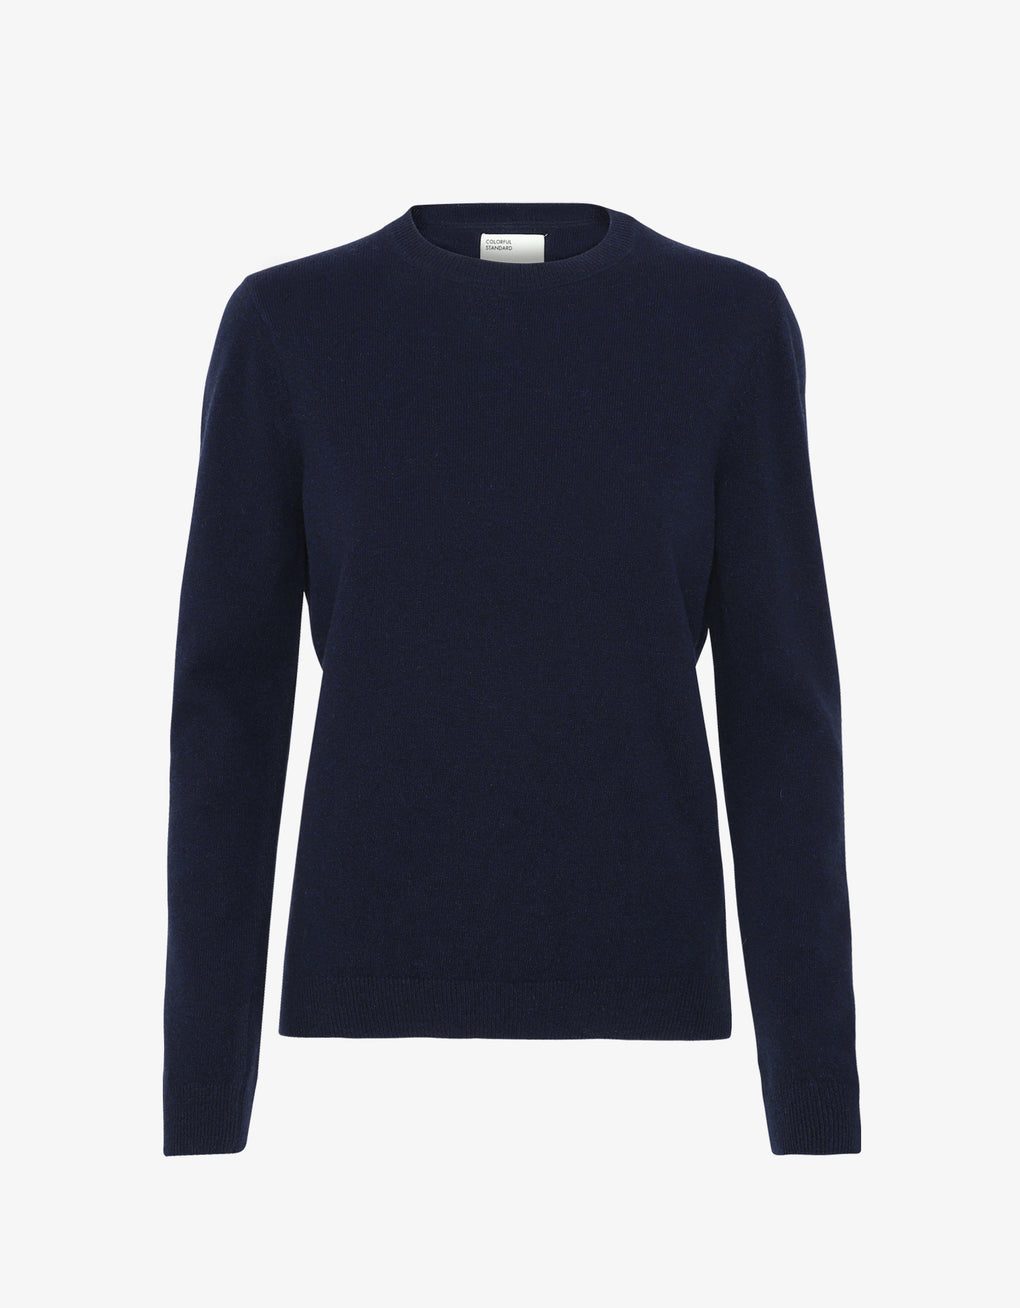 Colorful Standard Women Merino Wool Crew Women Merino Crewneck Navy Blue